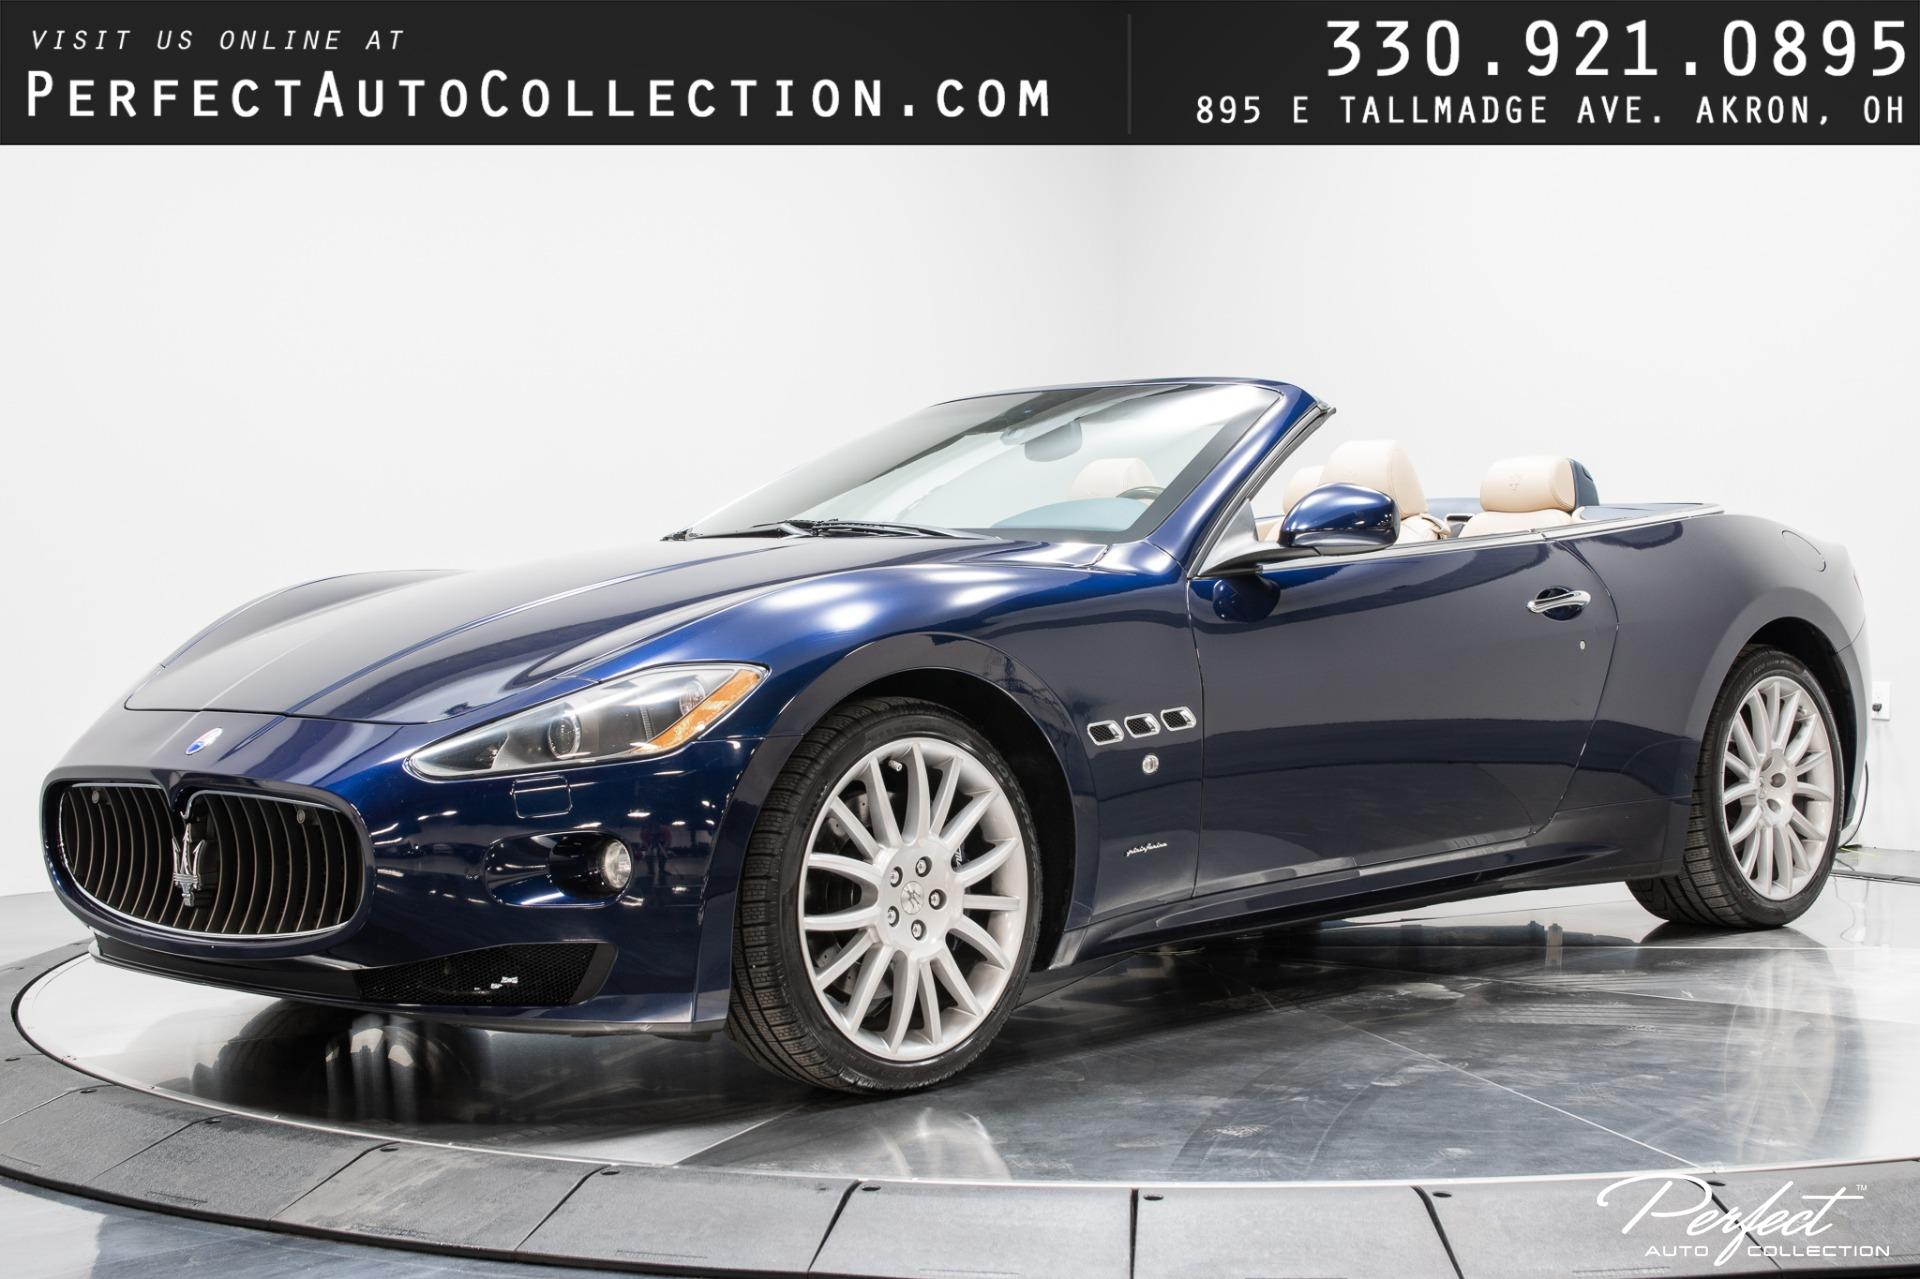 Used 2011 Maserati GranTurismo for sale Sold at Perfect Auto Collection in Akron OH 44310 1